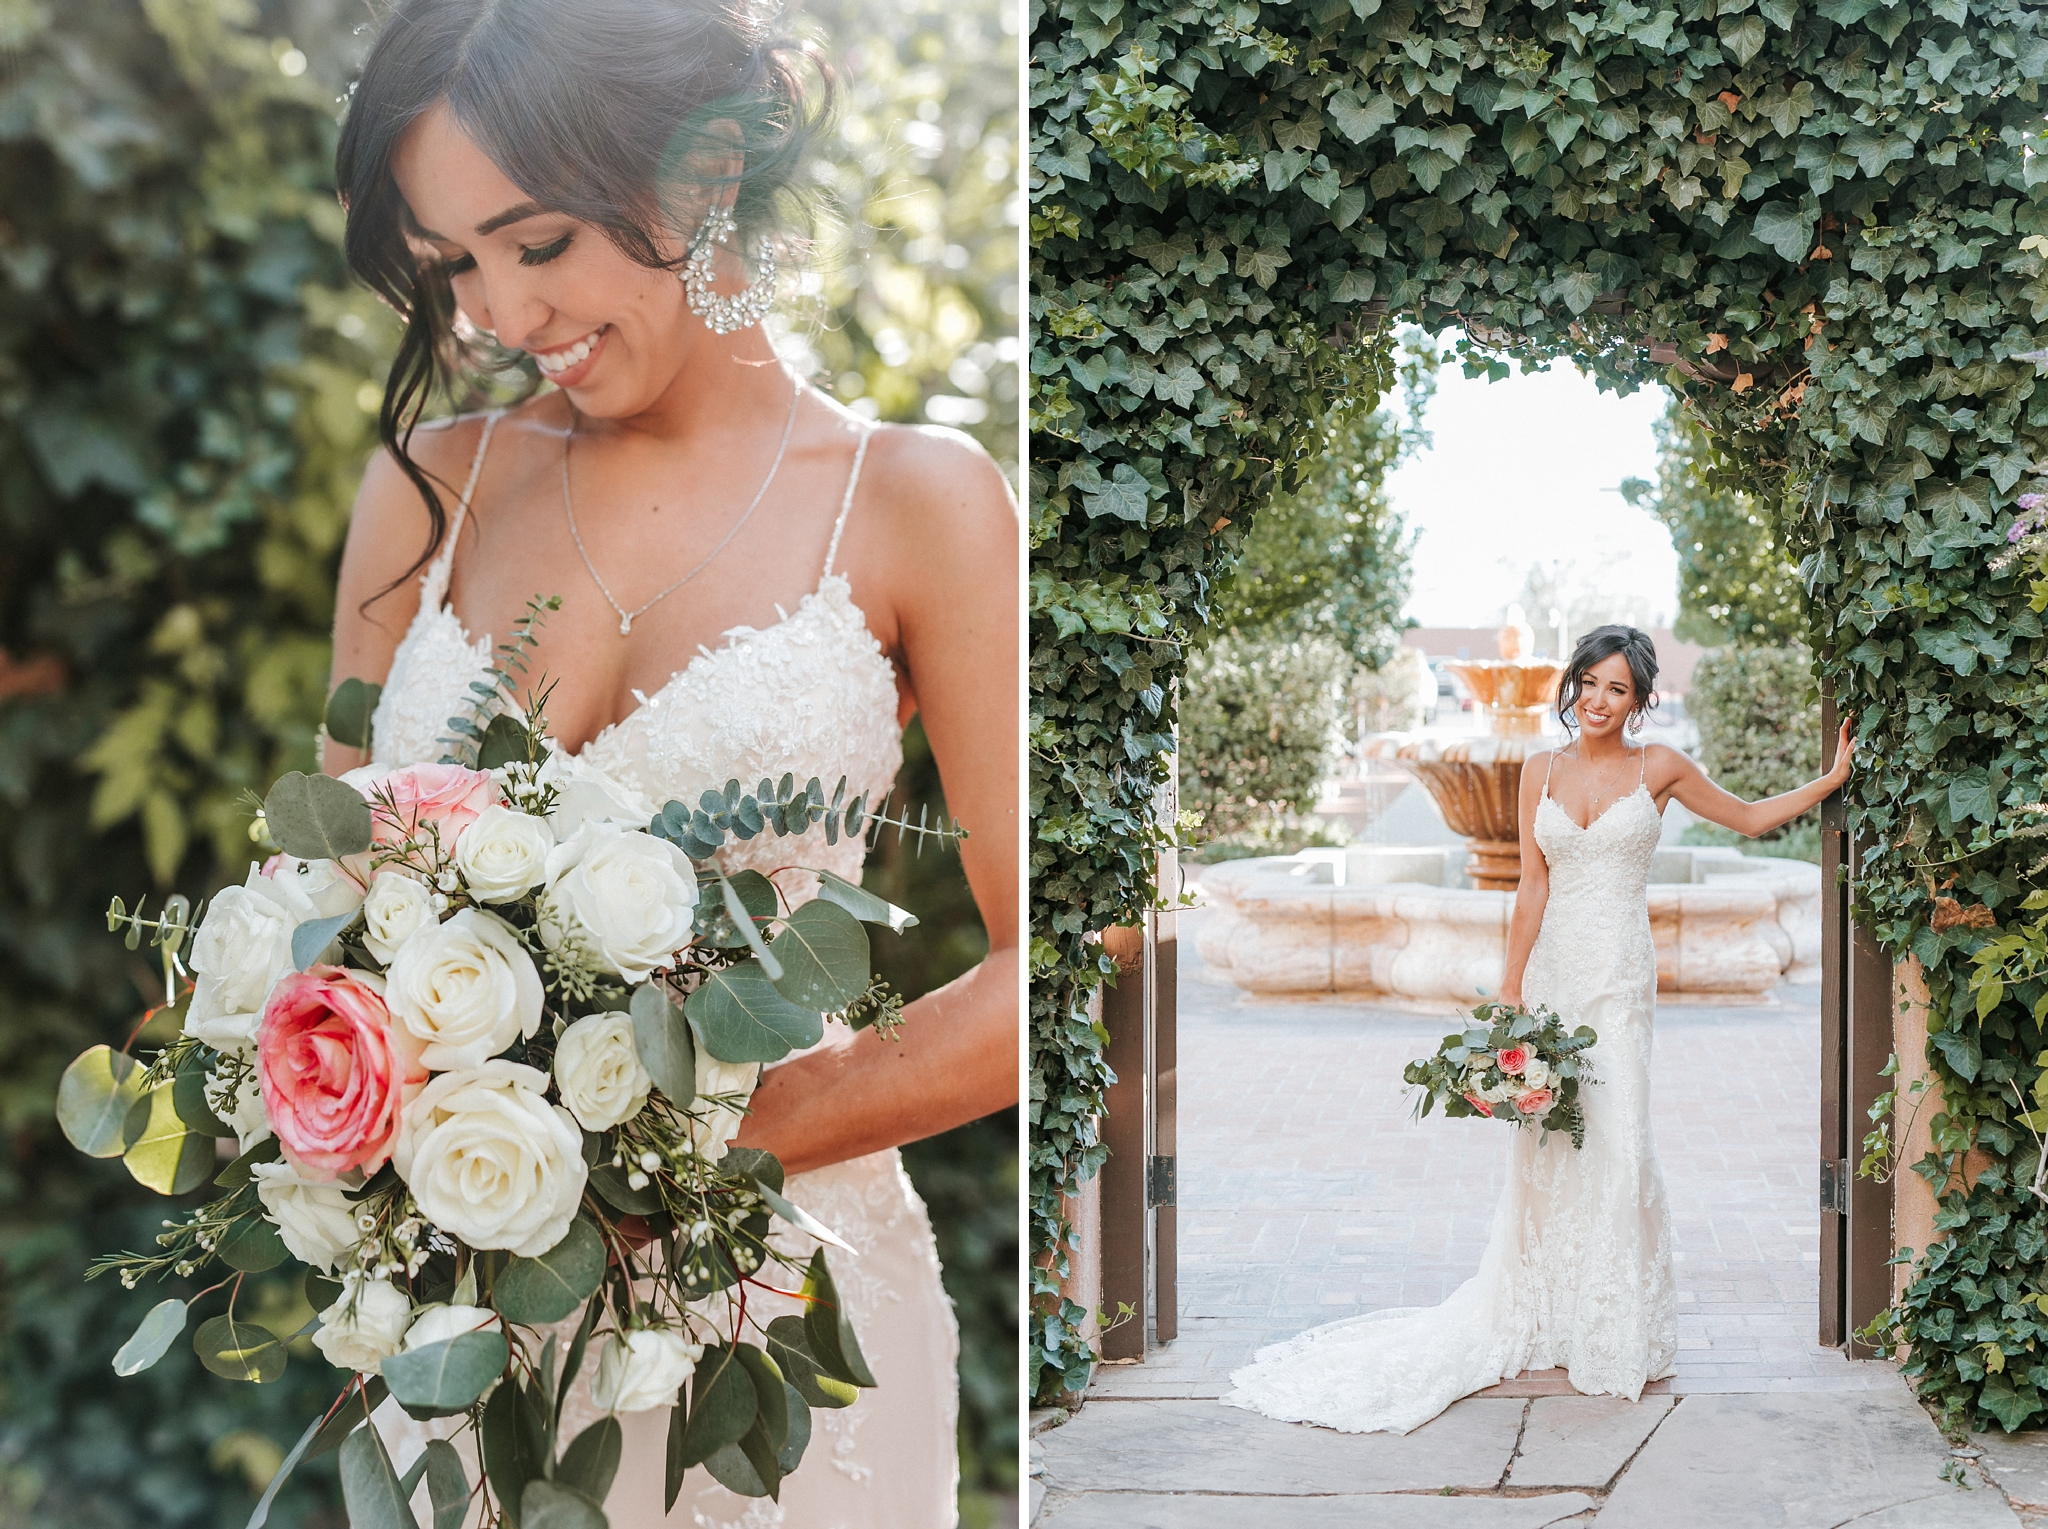 Alicia+lucia+photography+-+albuquerque+wedding+photographer+-+santa+fe+wedding+photography+-+new+mexico+wedding+photographer+-+new+mexico+wedding+-+wedding+makeup+-+makeup+artist+-+wedding+makeup+artist+-+bridal+makeup_0024.jpg